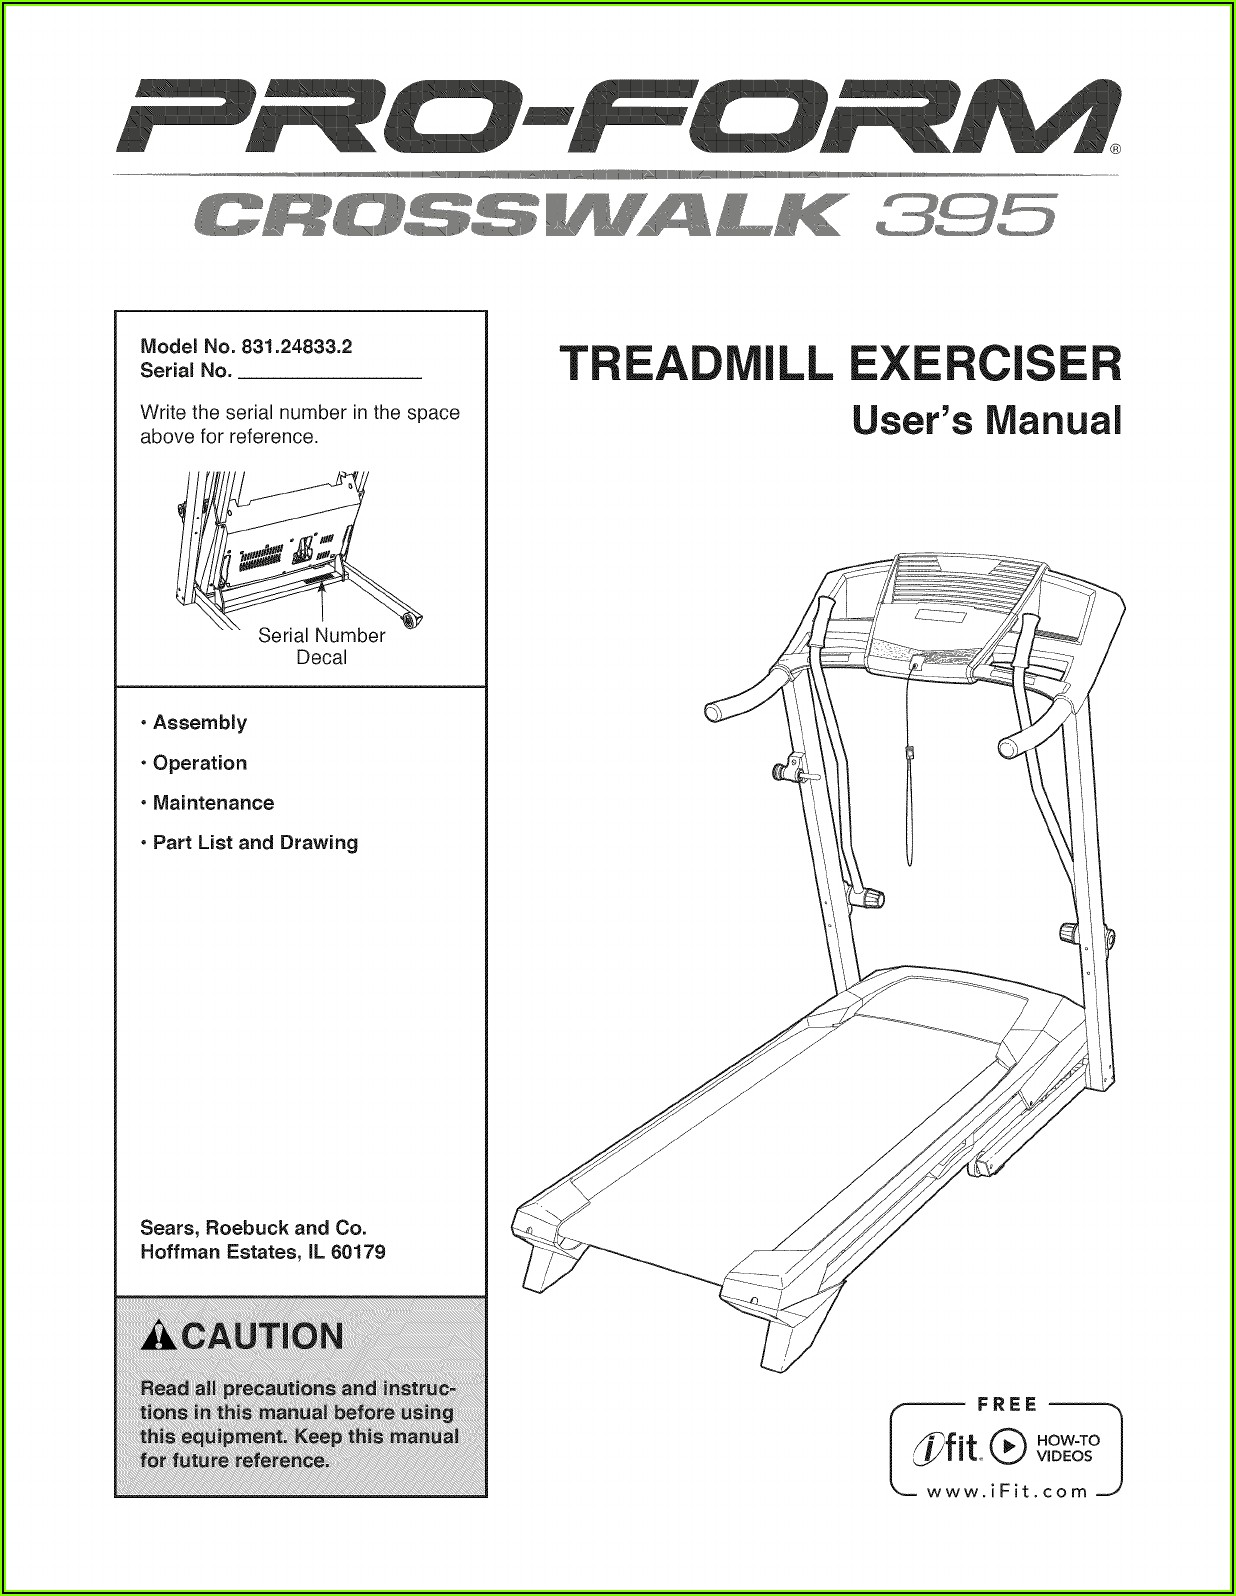 Proform Crosswalk 395 Treadmill